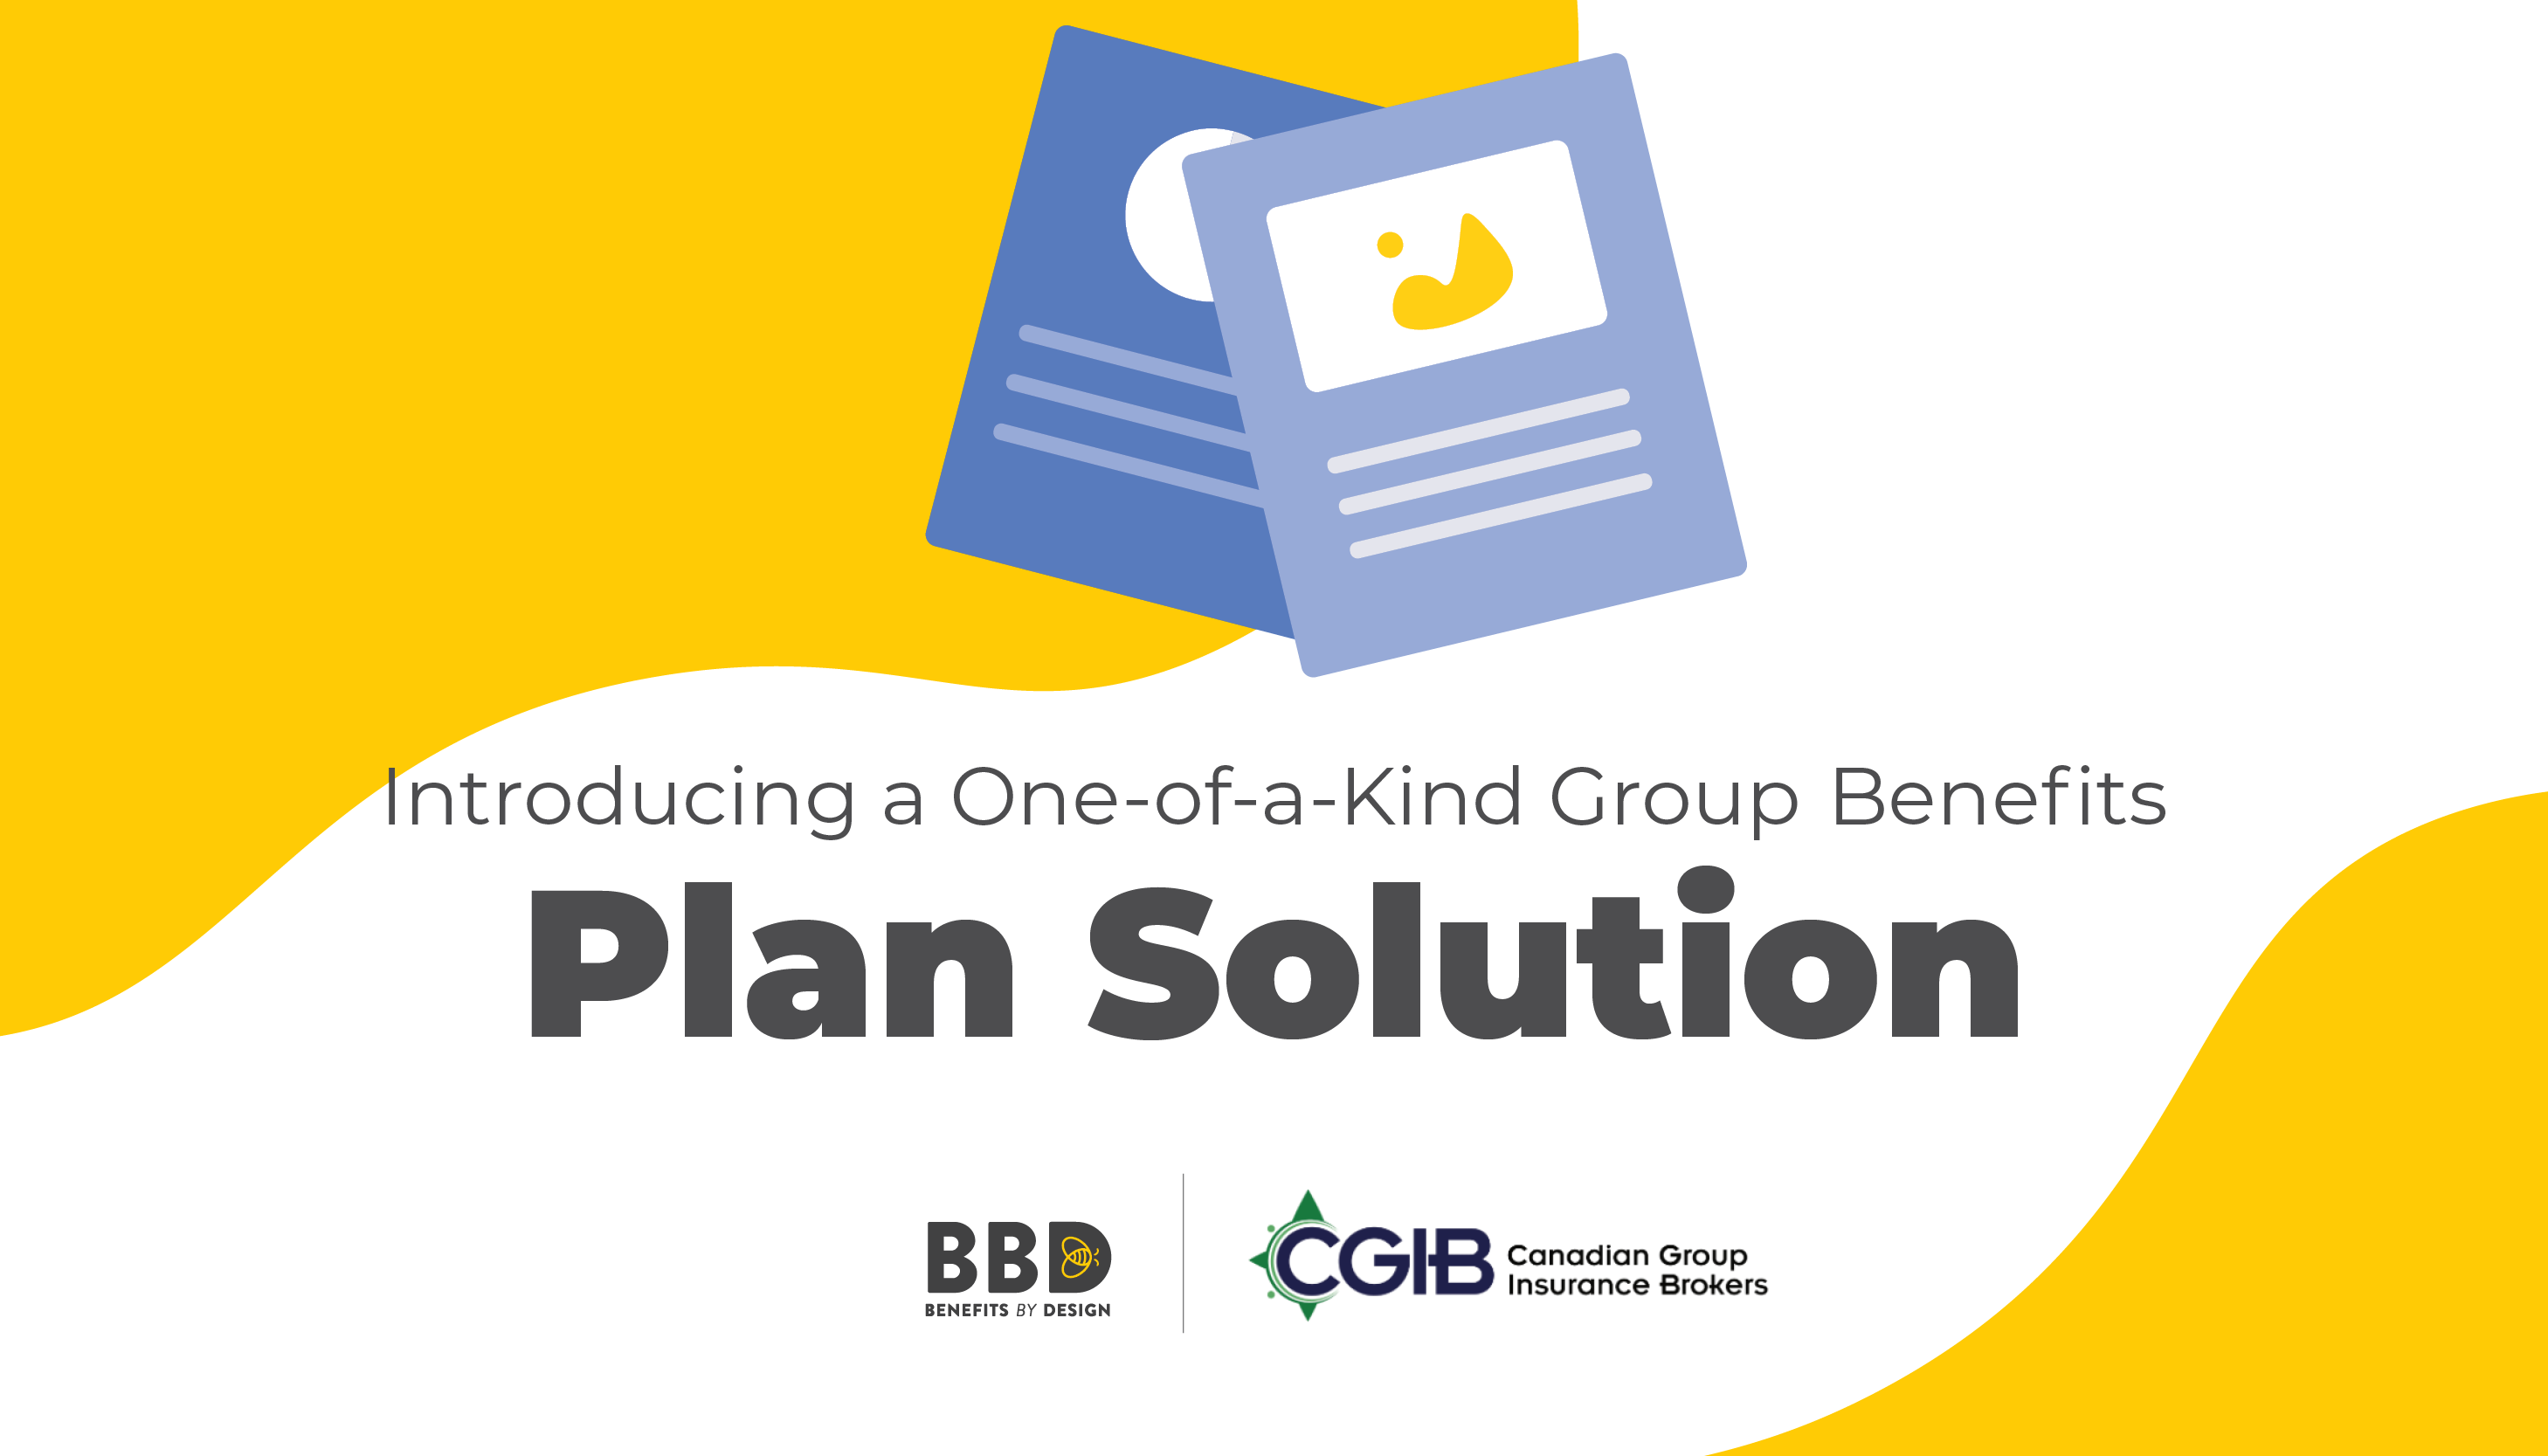 Introducing a One-of-a-Kind Group Benefits Plan Solution | Benefits by Design